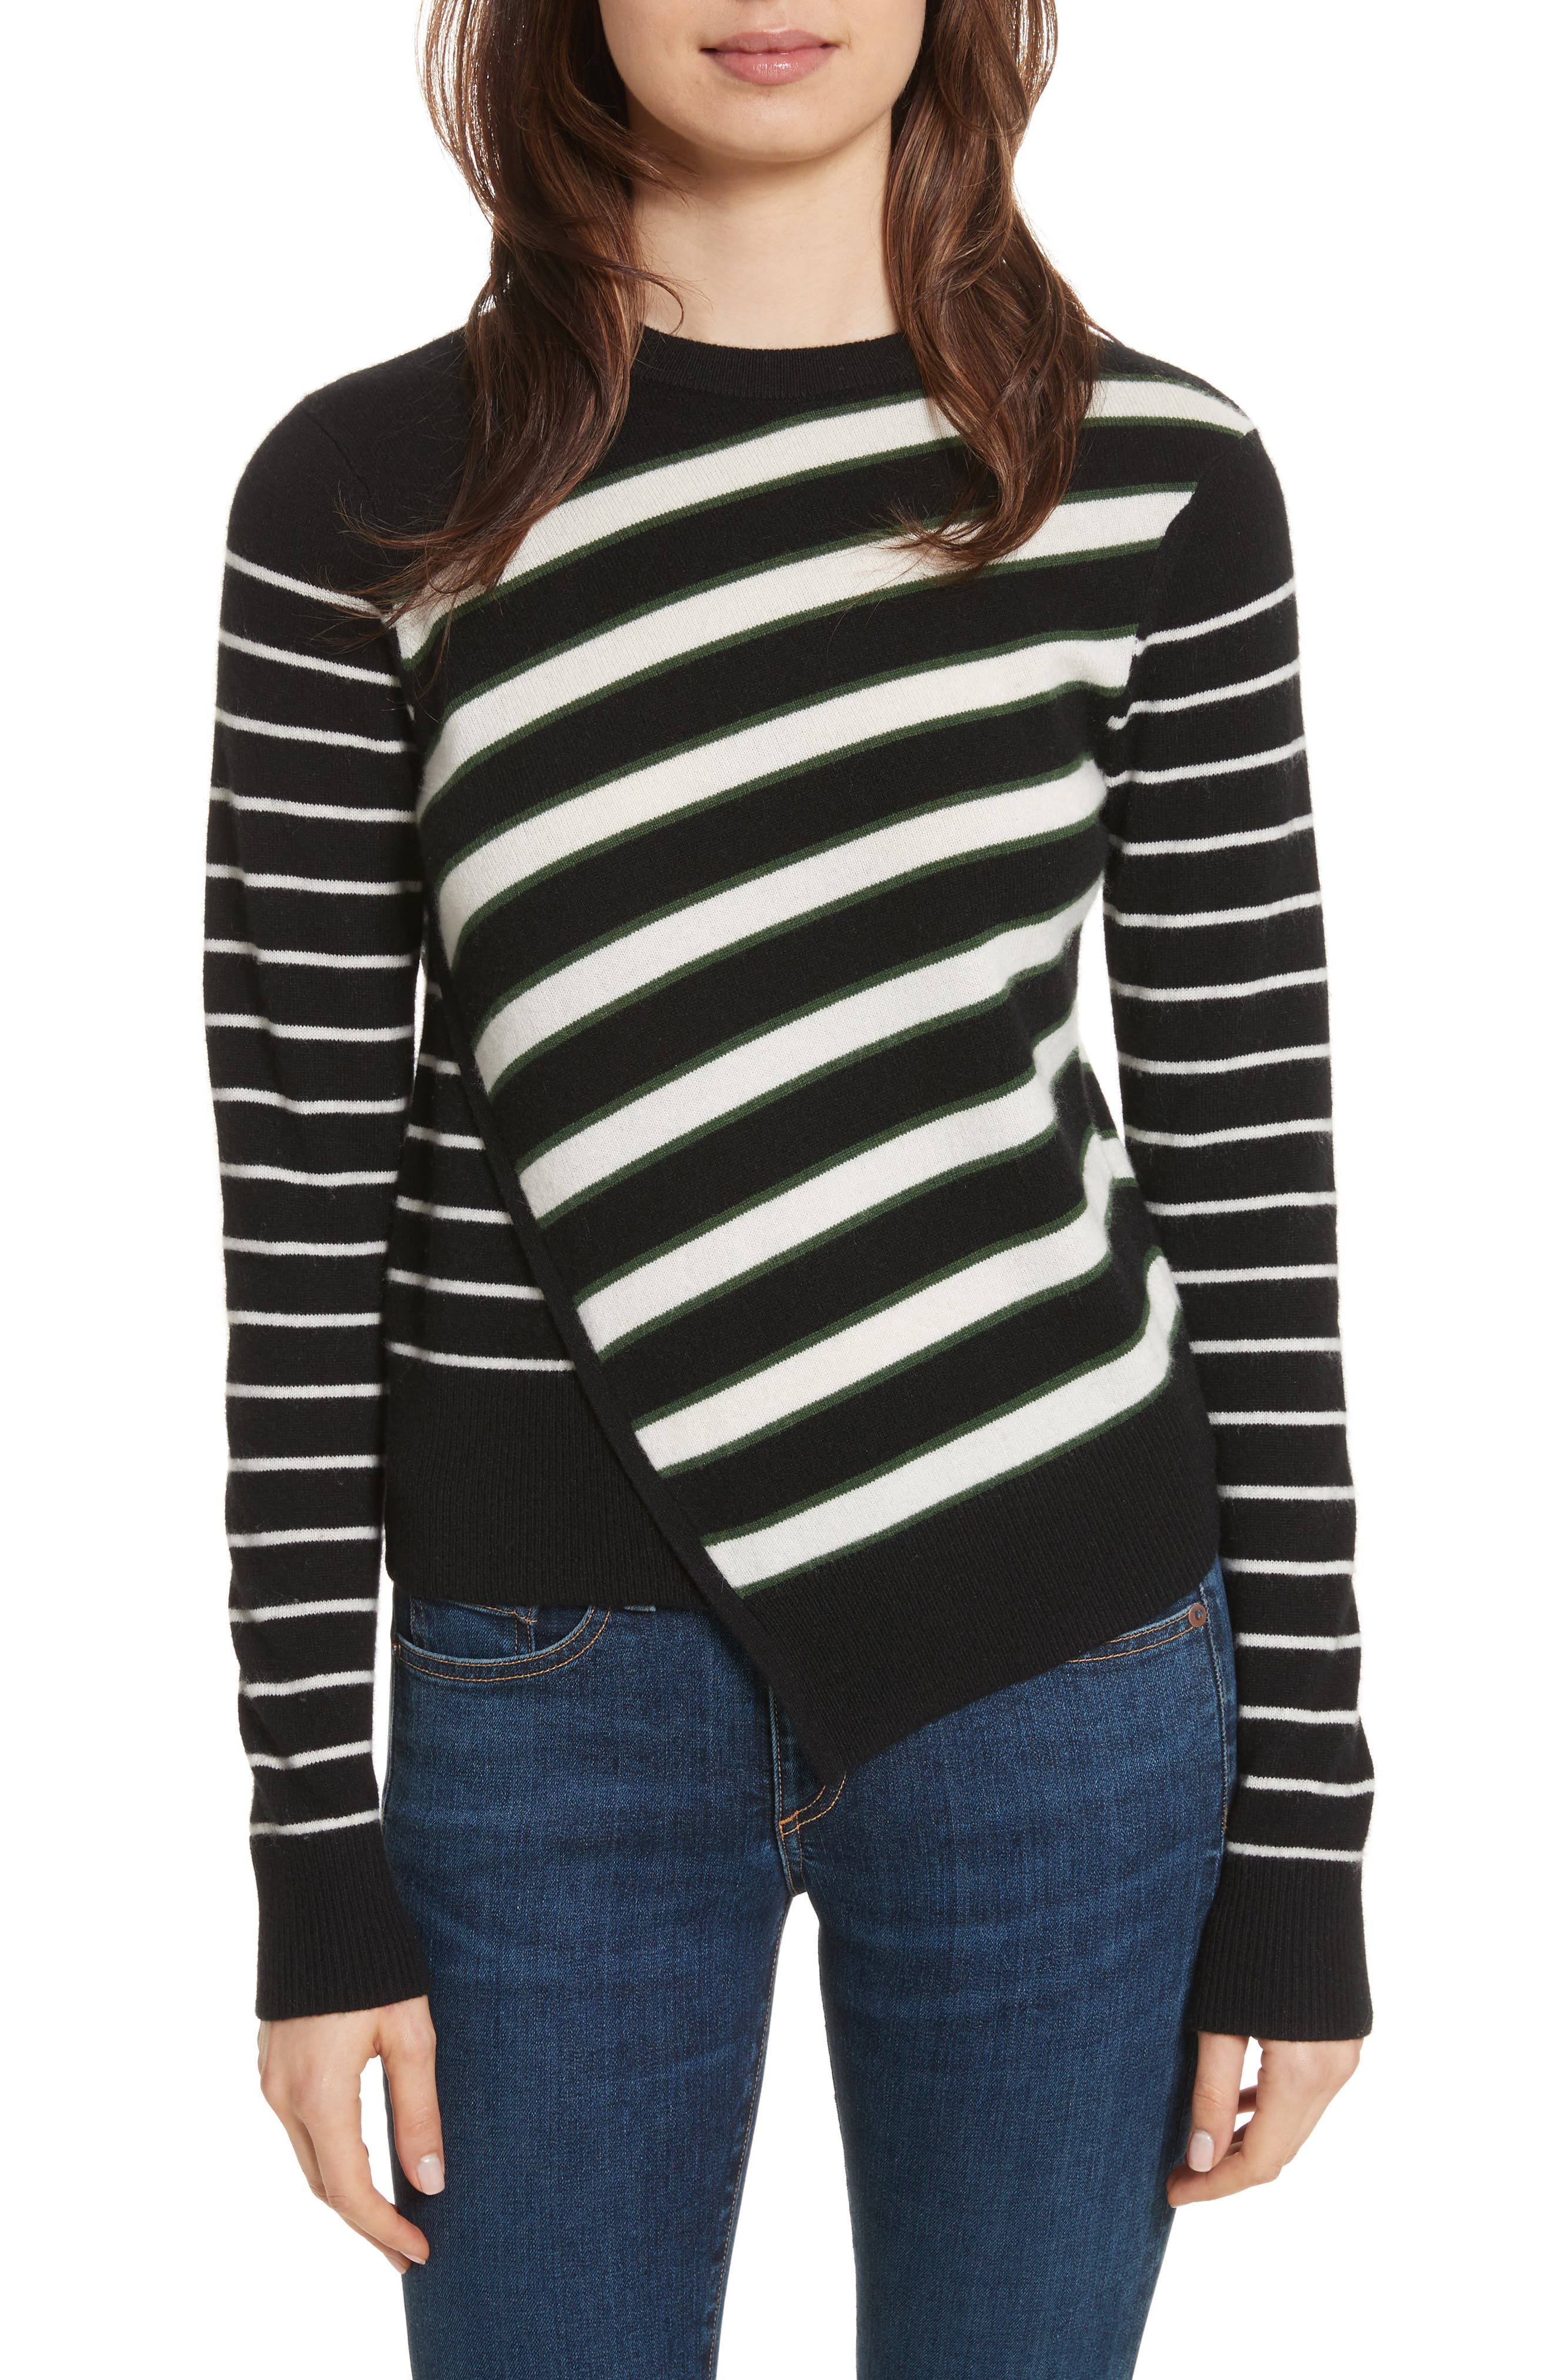 Pepper Cashmere Sweater,                         Main,                         color, Black/ Green/ Ivory